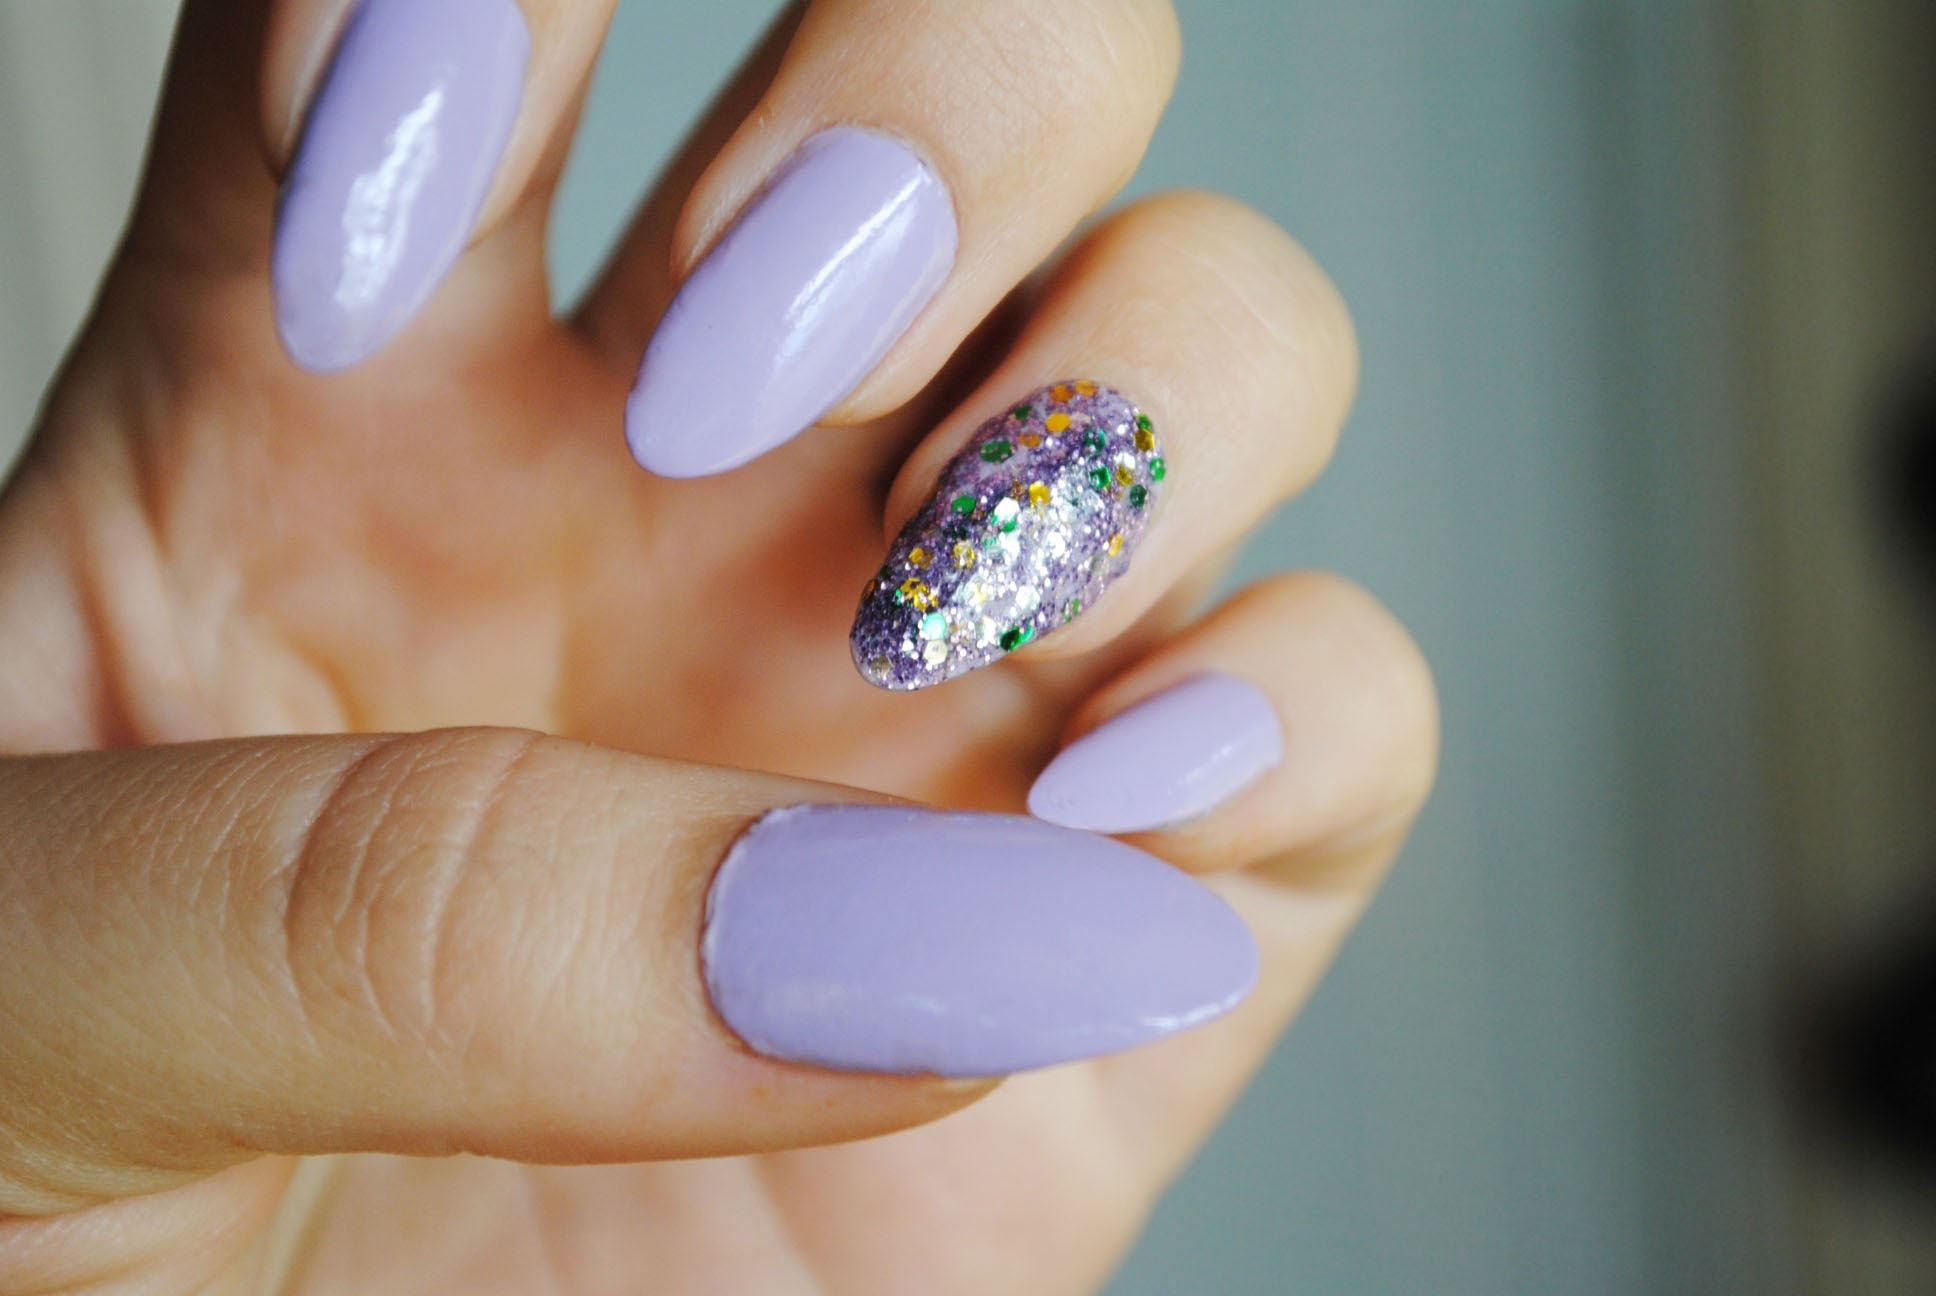 Short Stiletto Nails With A Glitter Accent